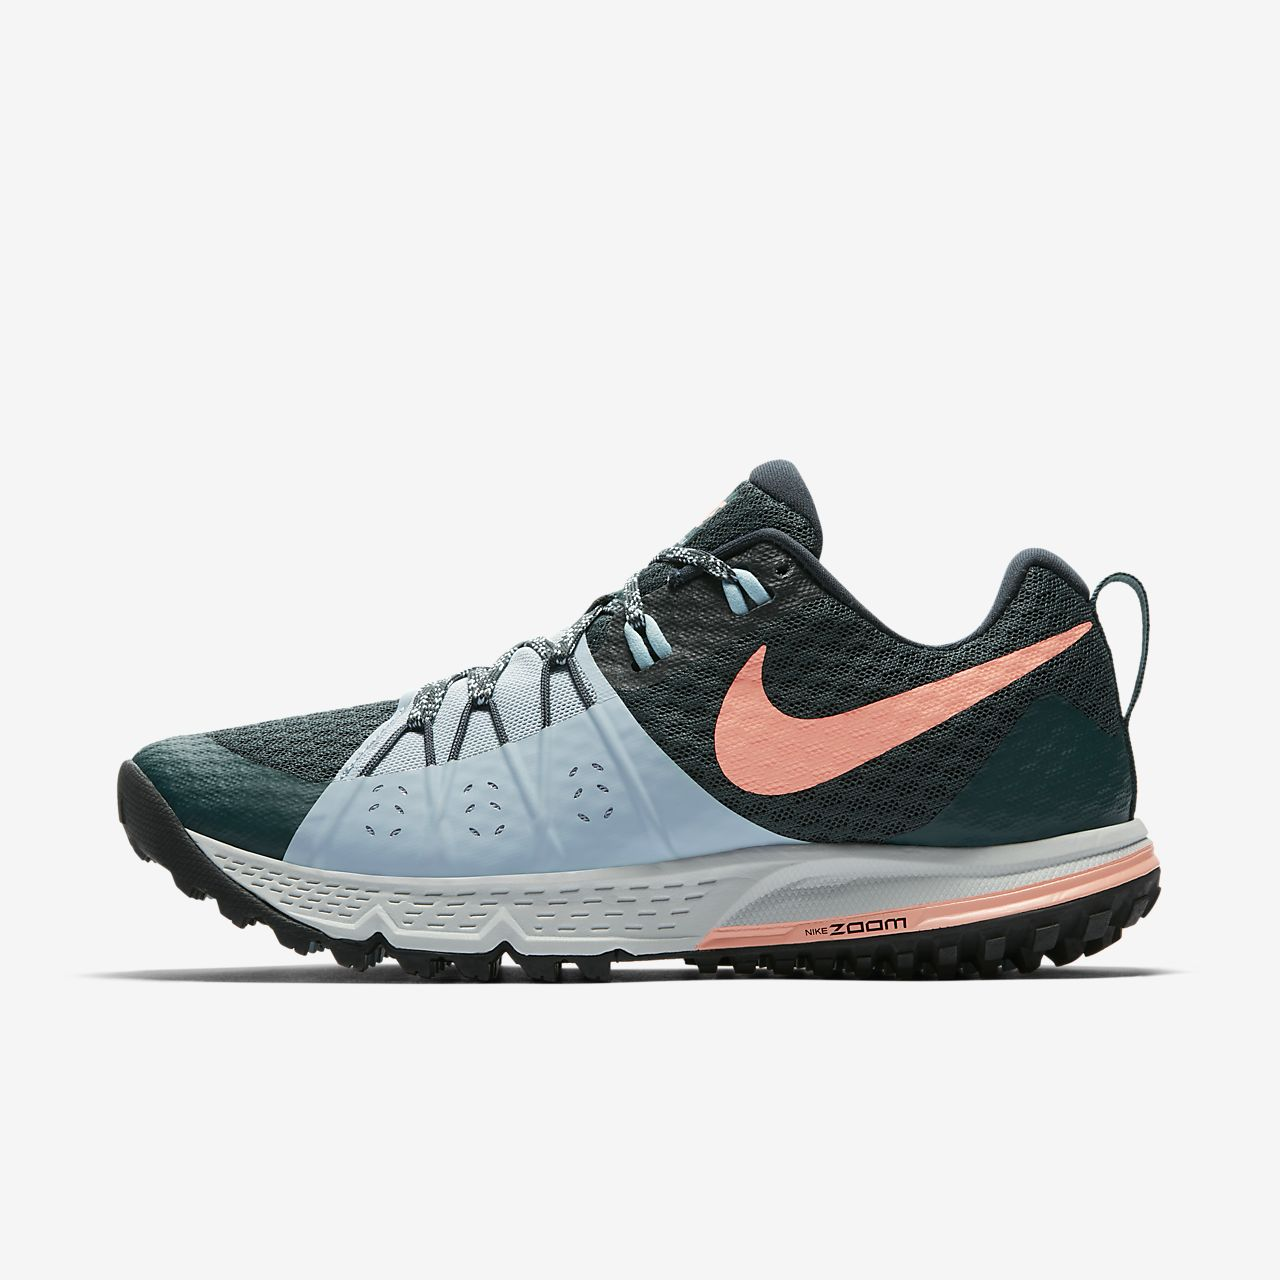 NIKE AIR ZOOM WILDHORSE 4 WOMEN'S RUNNING SHOE